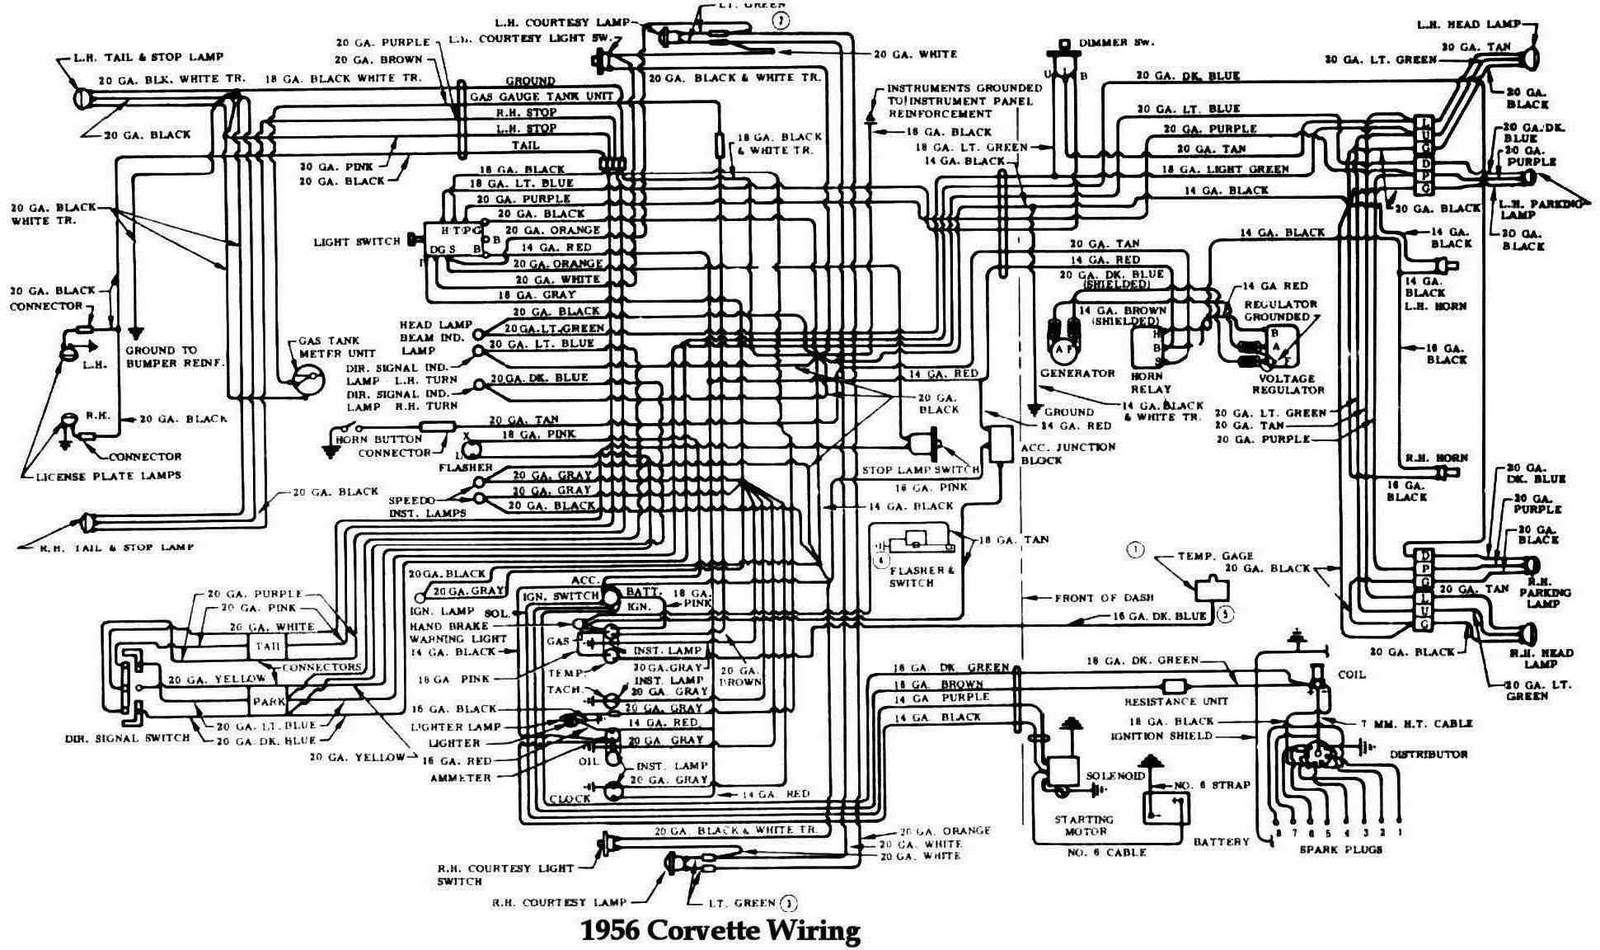 4.bp.blogspot.com/-FcFHqltHppM/TwZM2KBr65I/AAAA... | 1965 Corvette Instrument Wiring Diagram |  | power-outletbest.aiellopresidente.it